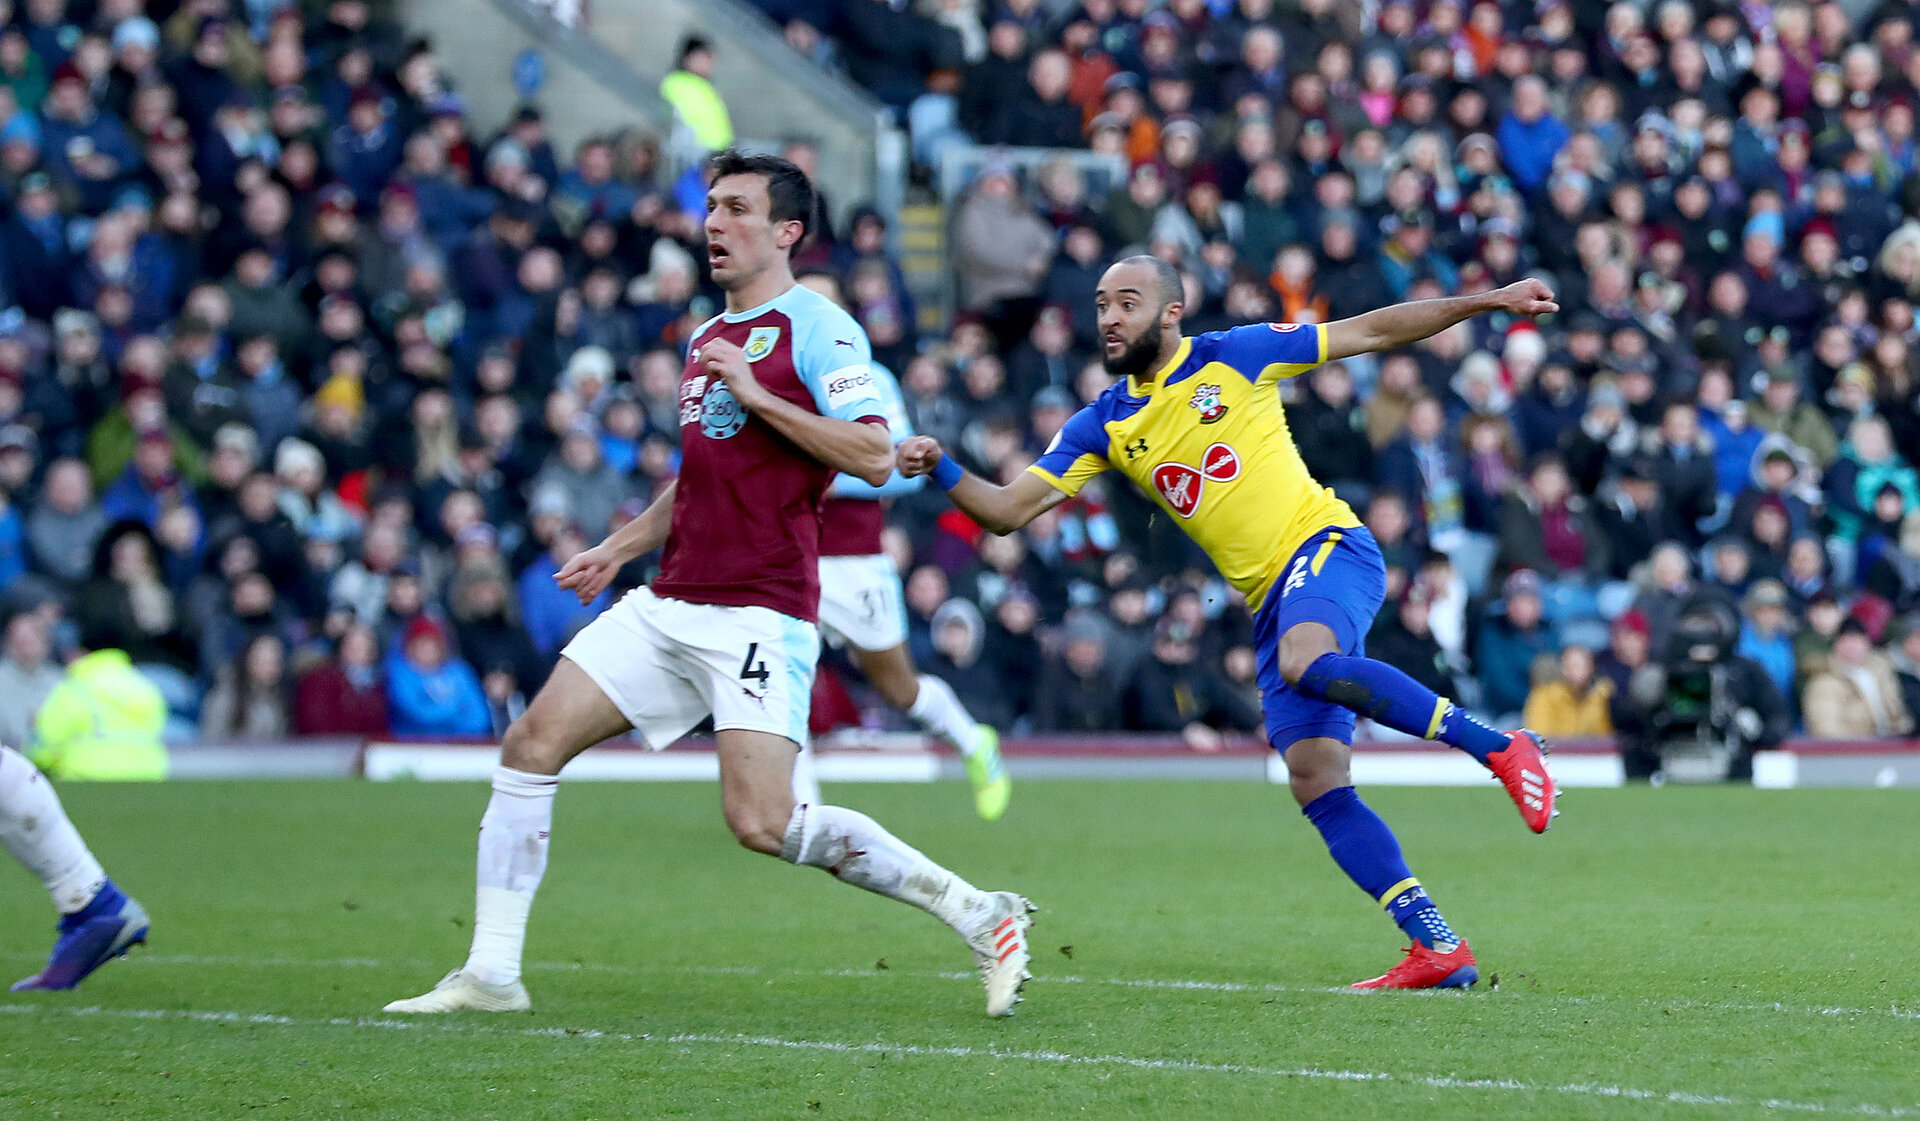 BURNLEY, ENGLAND - FEBRUARY 02: Nathan Redmond watches his shot hit the back of the net during the Premier League match between Burnley FC and Southampton FC at Turf Moor on February 02, 2019 in Burnley, United Kingdom. (Photo by Matt Watson/Southampton FC via Getty Images)